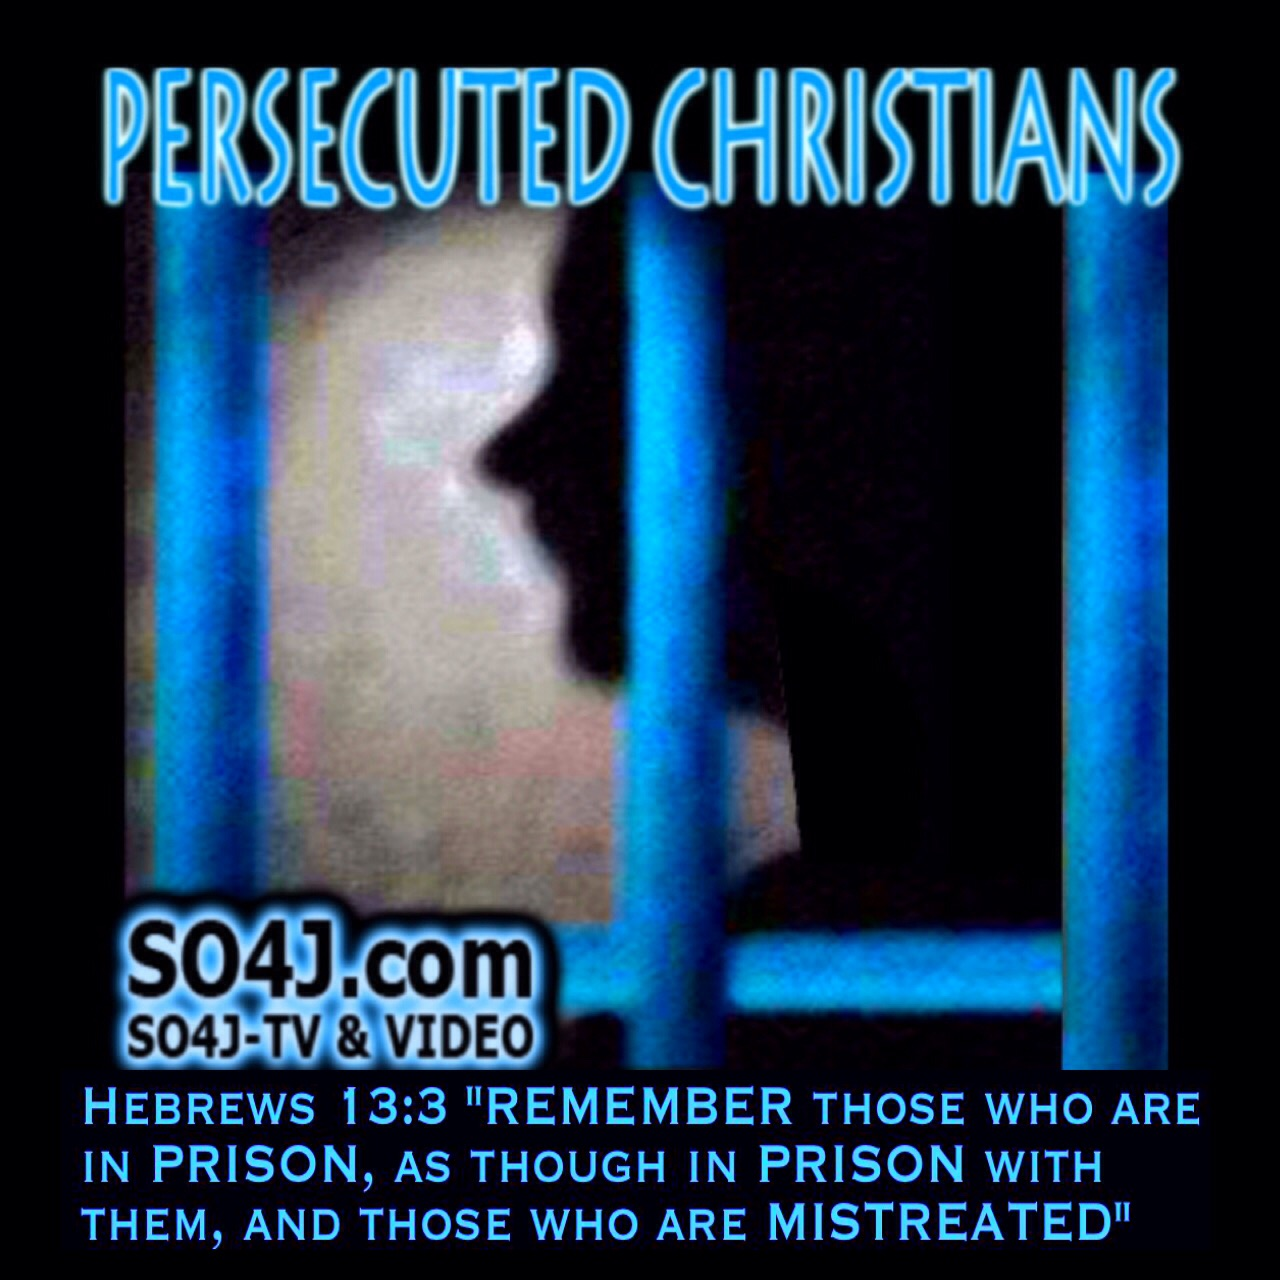 Persecuted Christians Facts & Videos - SO4J-TV - SO4J.com